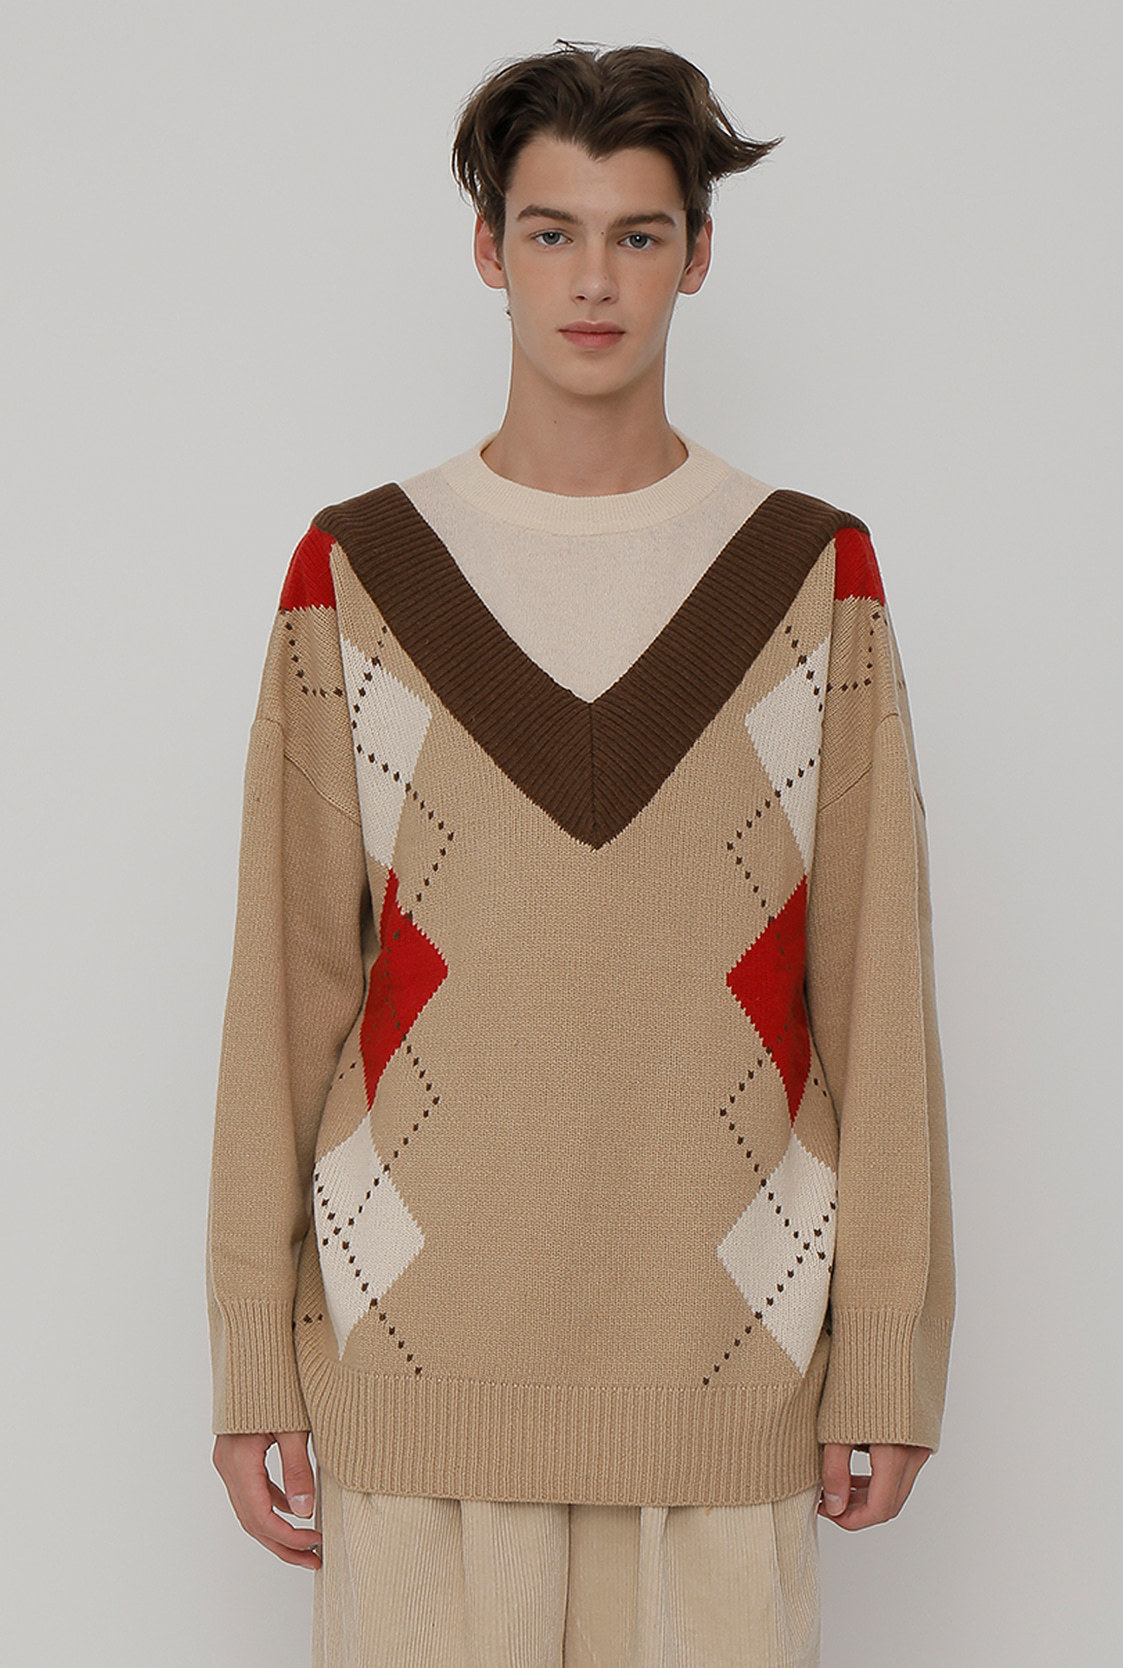 M)R V BIG ARGYLE KNIT_BEIGE